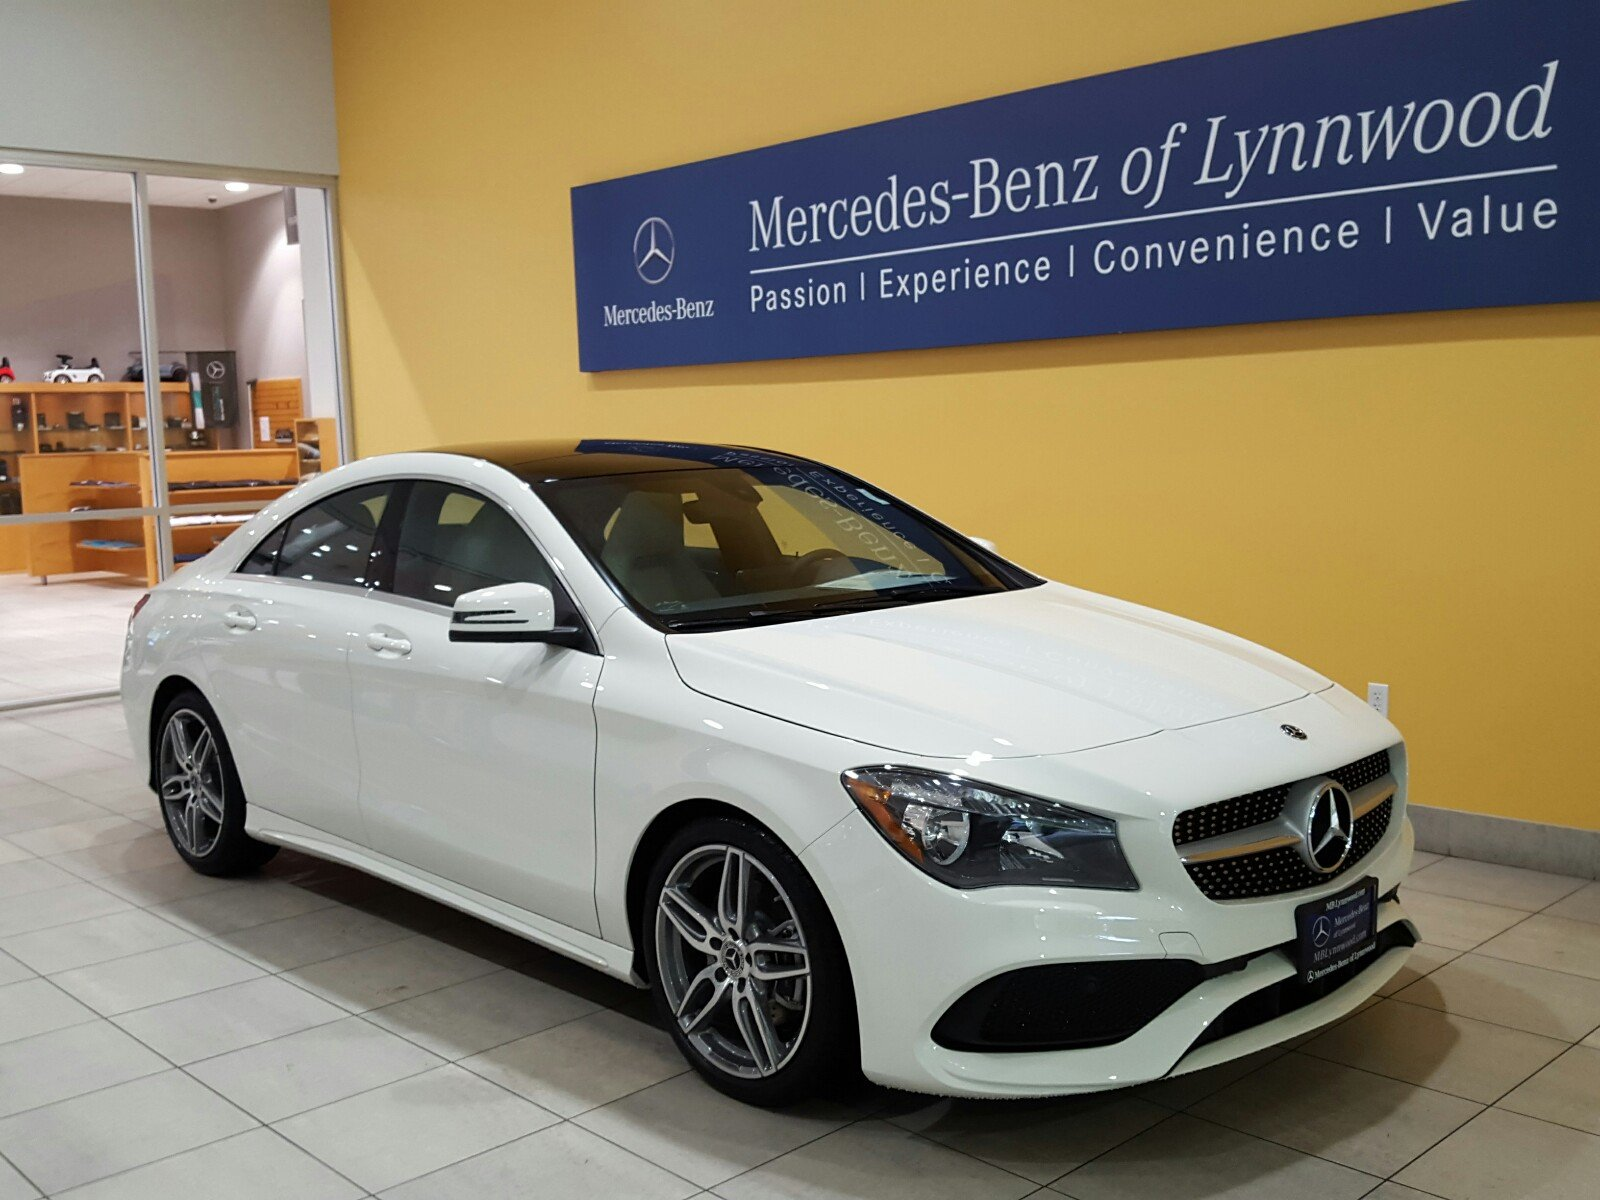 New 2018 mercedes benz cla cla 250 4matic coupe coupe in for Mercedes benz financial contact number